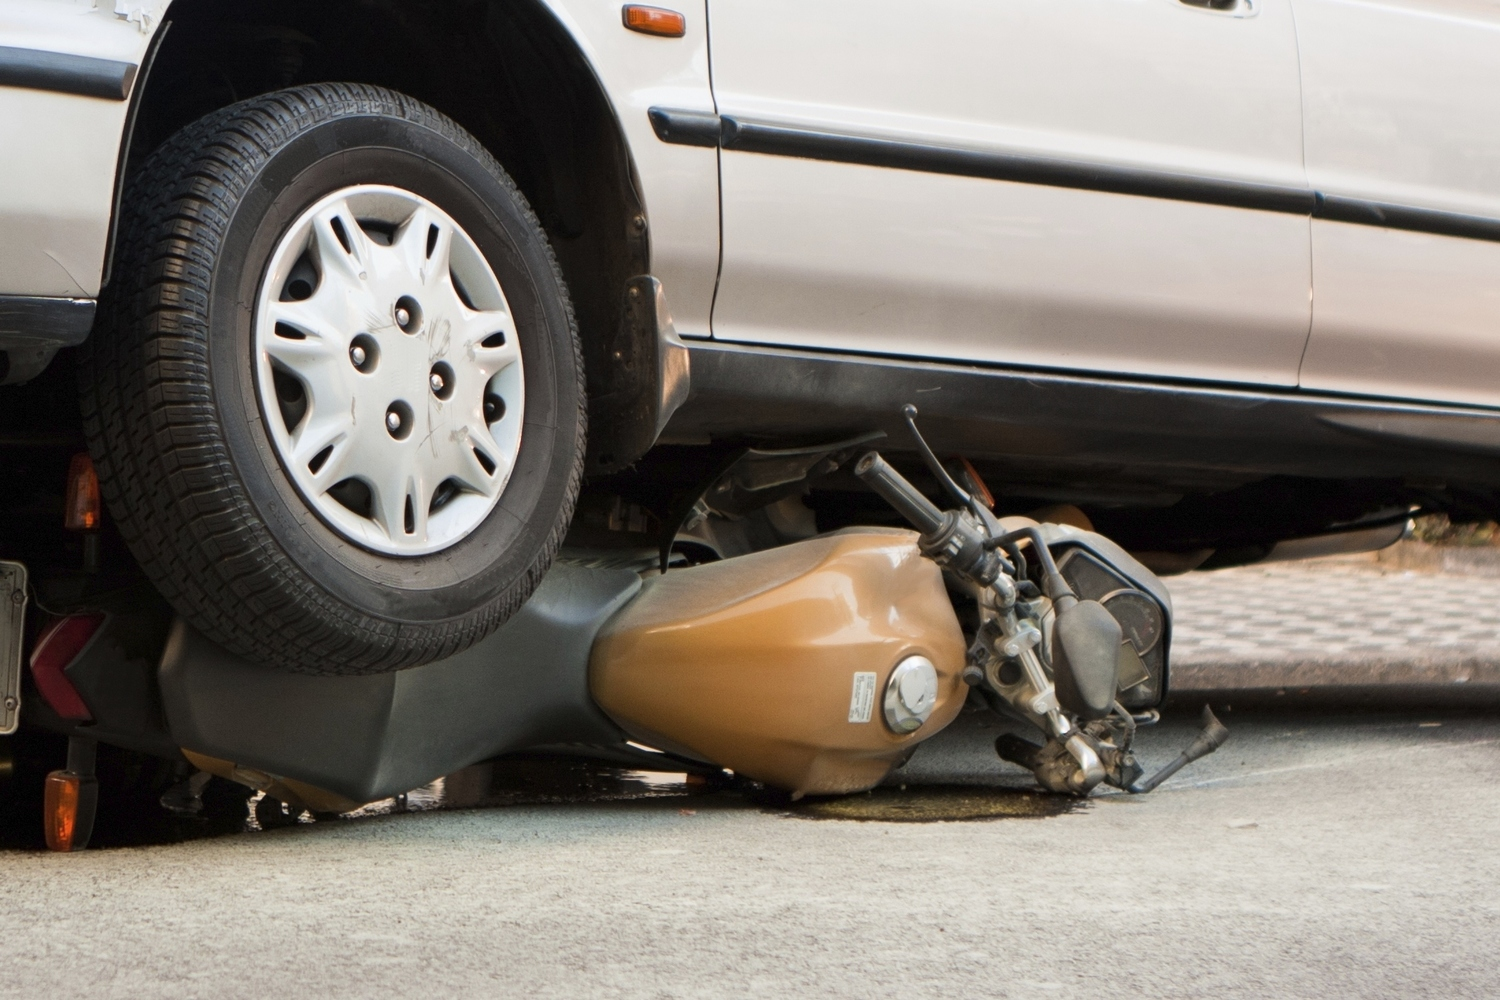 Motorcycle Accidents Pa Nj Personal Injury Lawyers Green